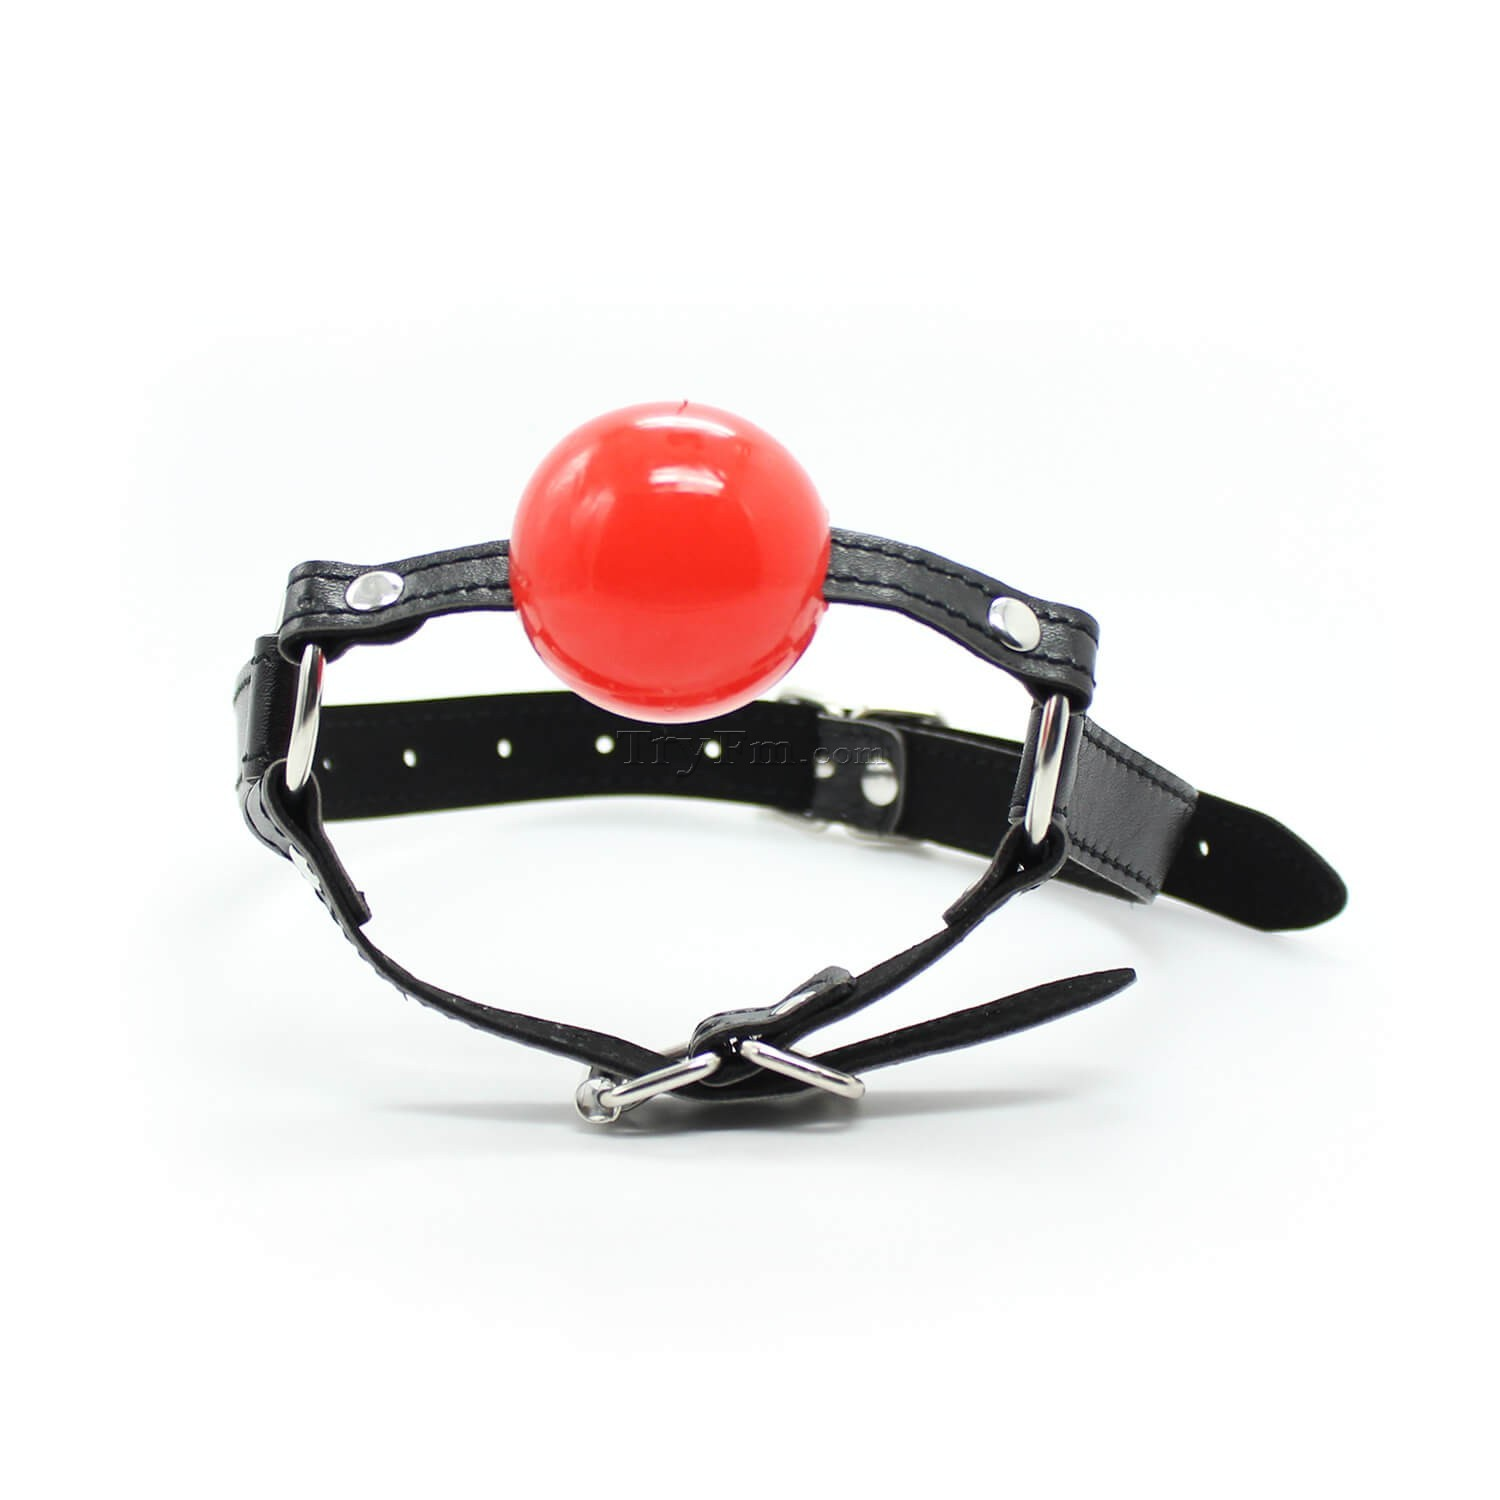 11-Chin-Strap-Ball-Gag-RED-3.jpg